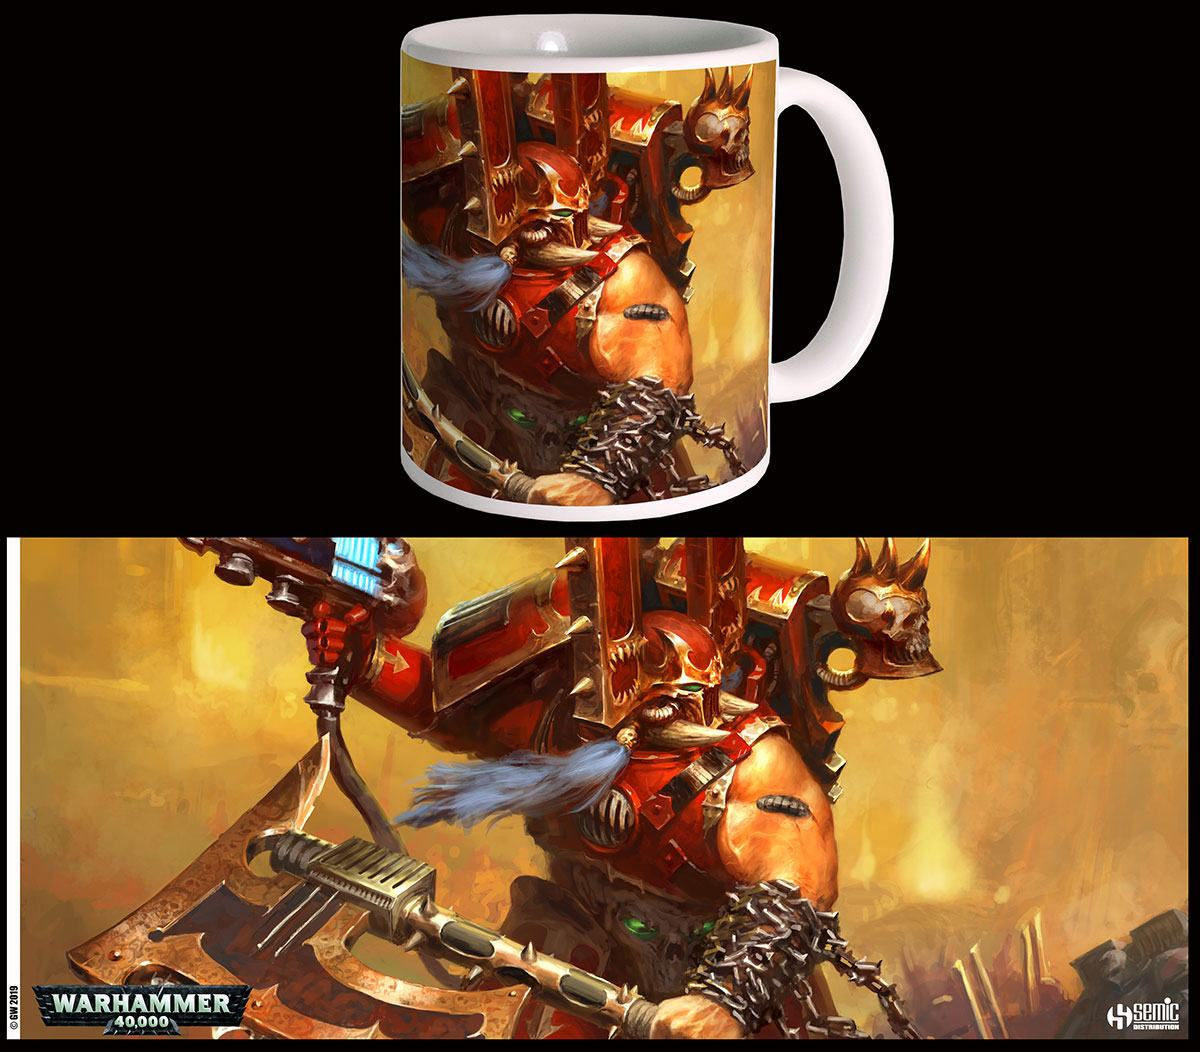 Warhammer 40K Mug Kharn the Betrayer